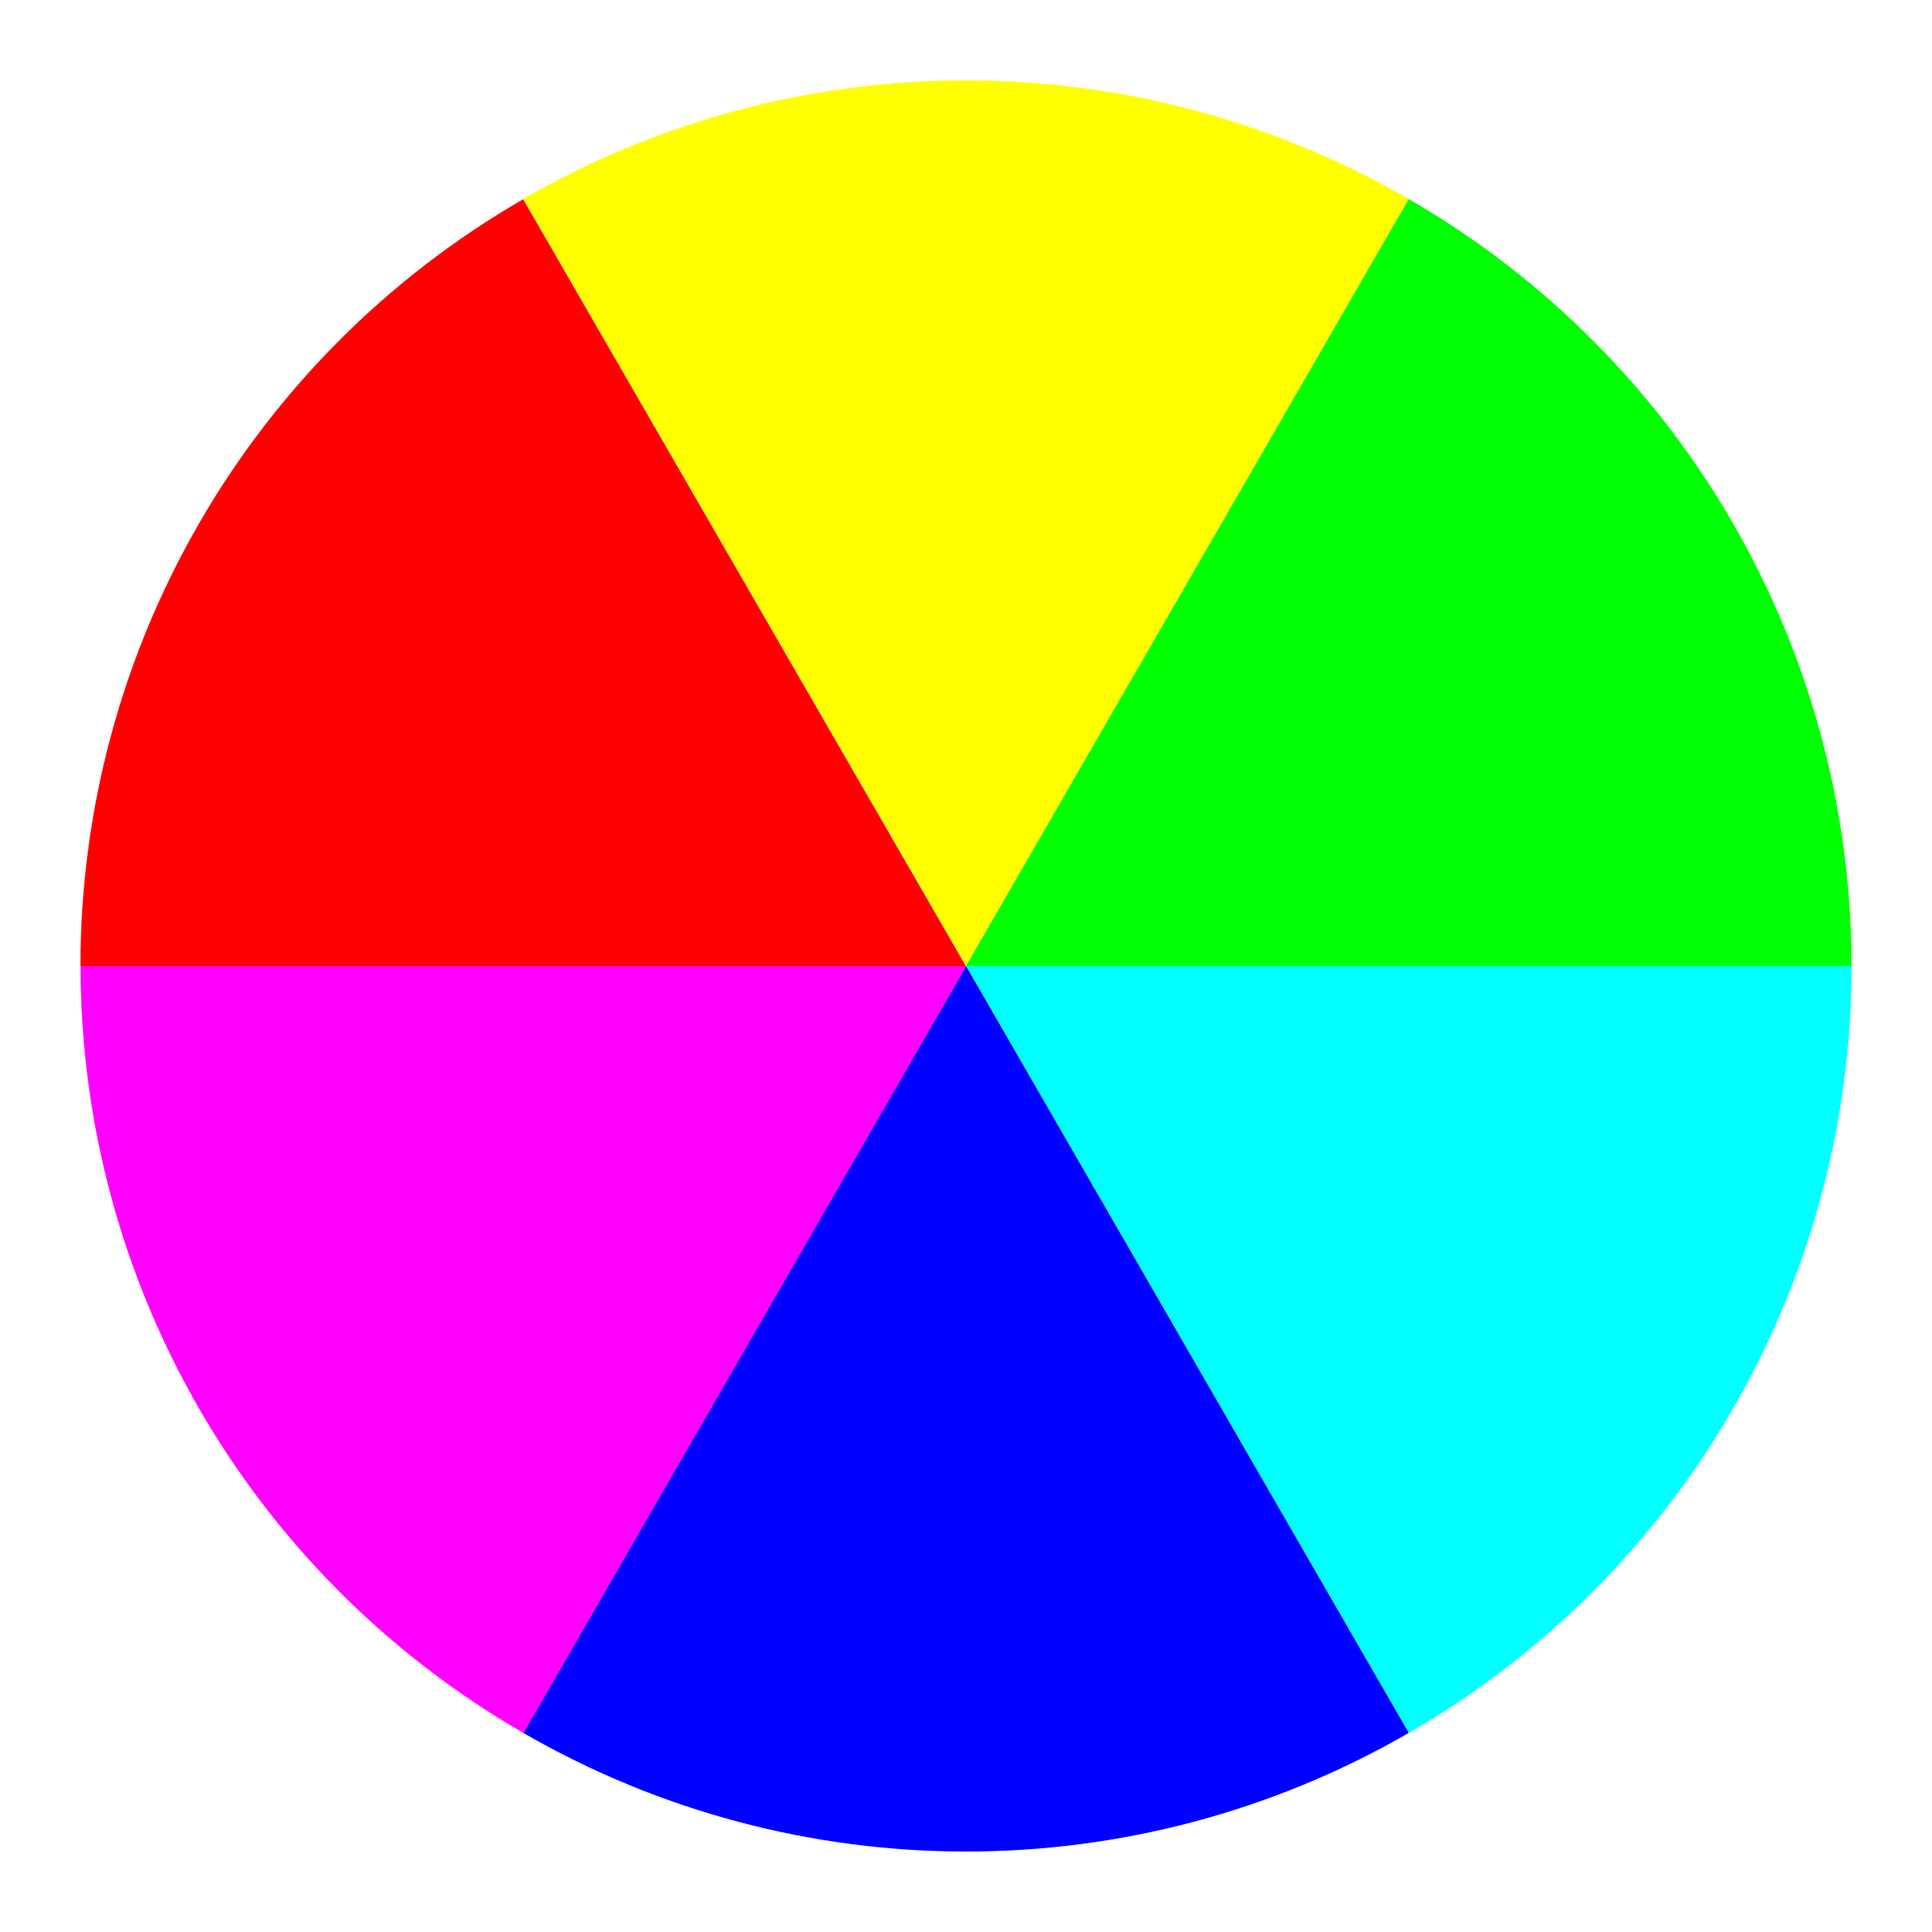 6 color beach ball by 10binary